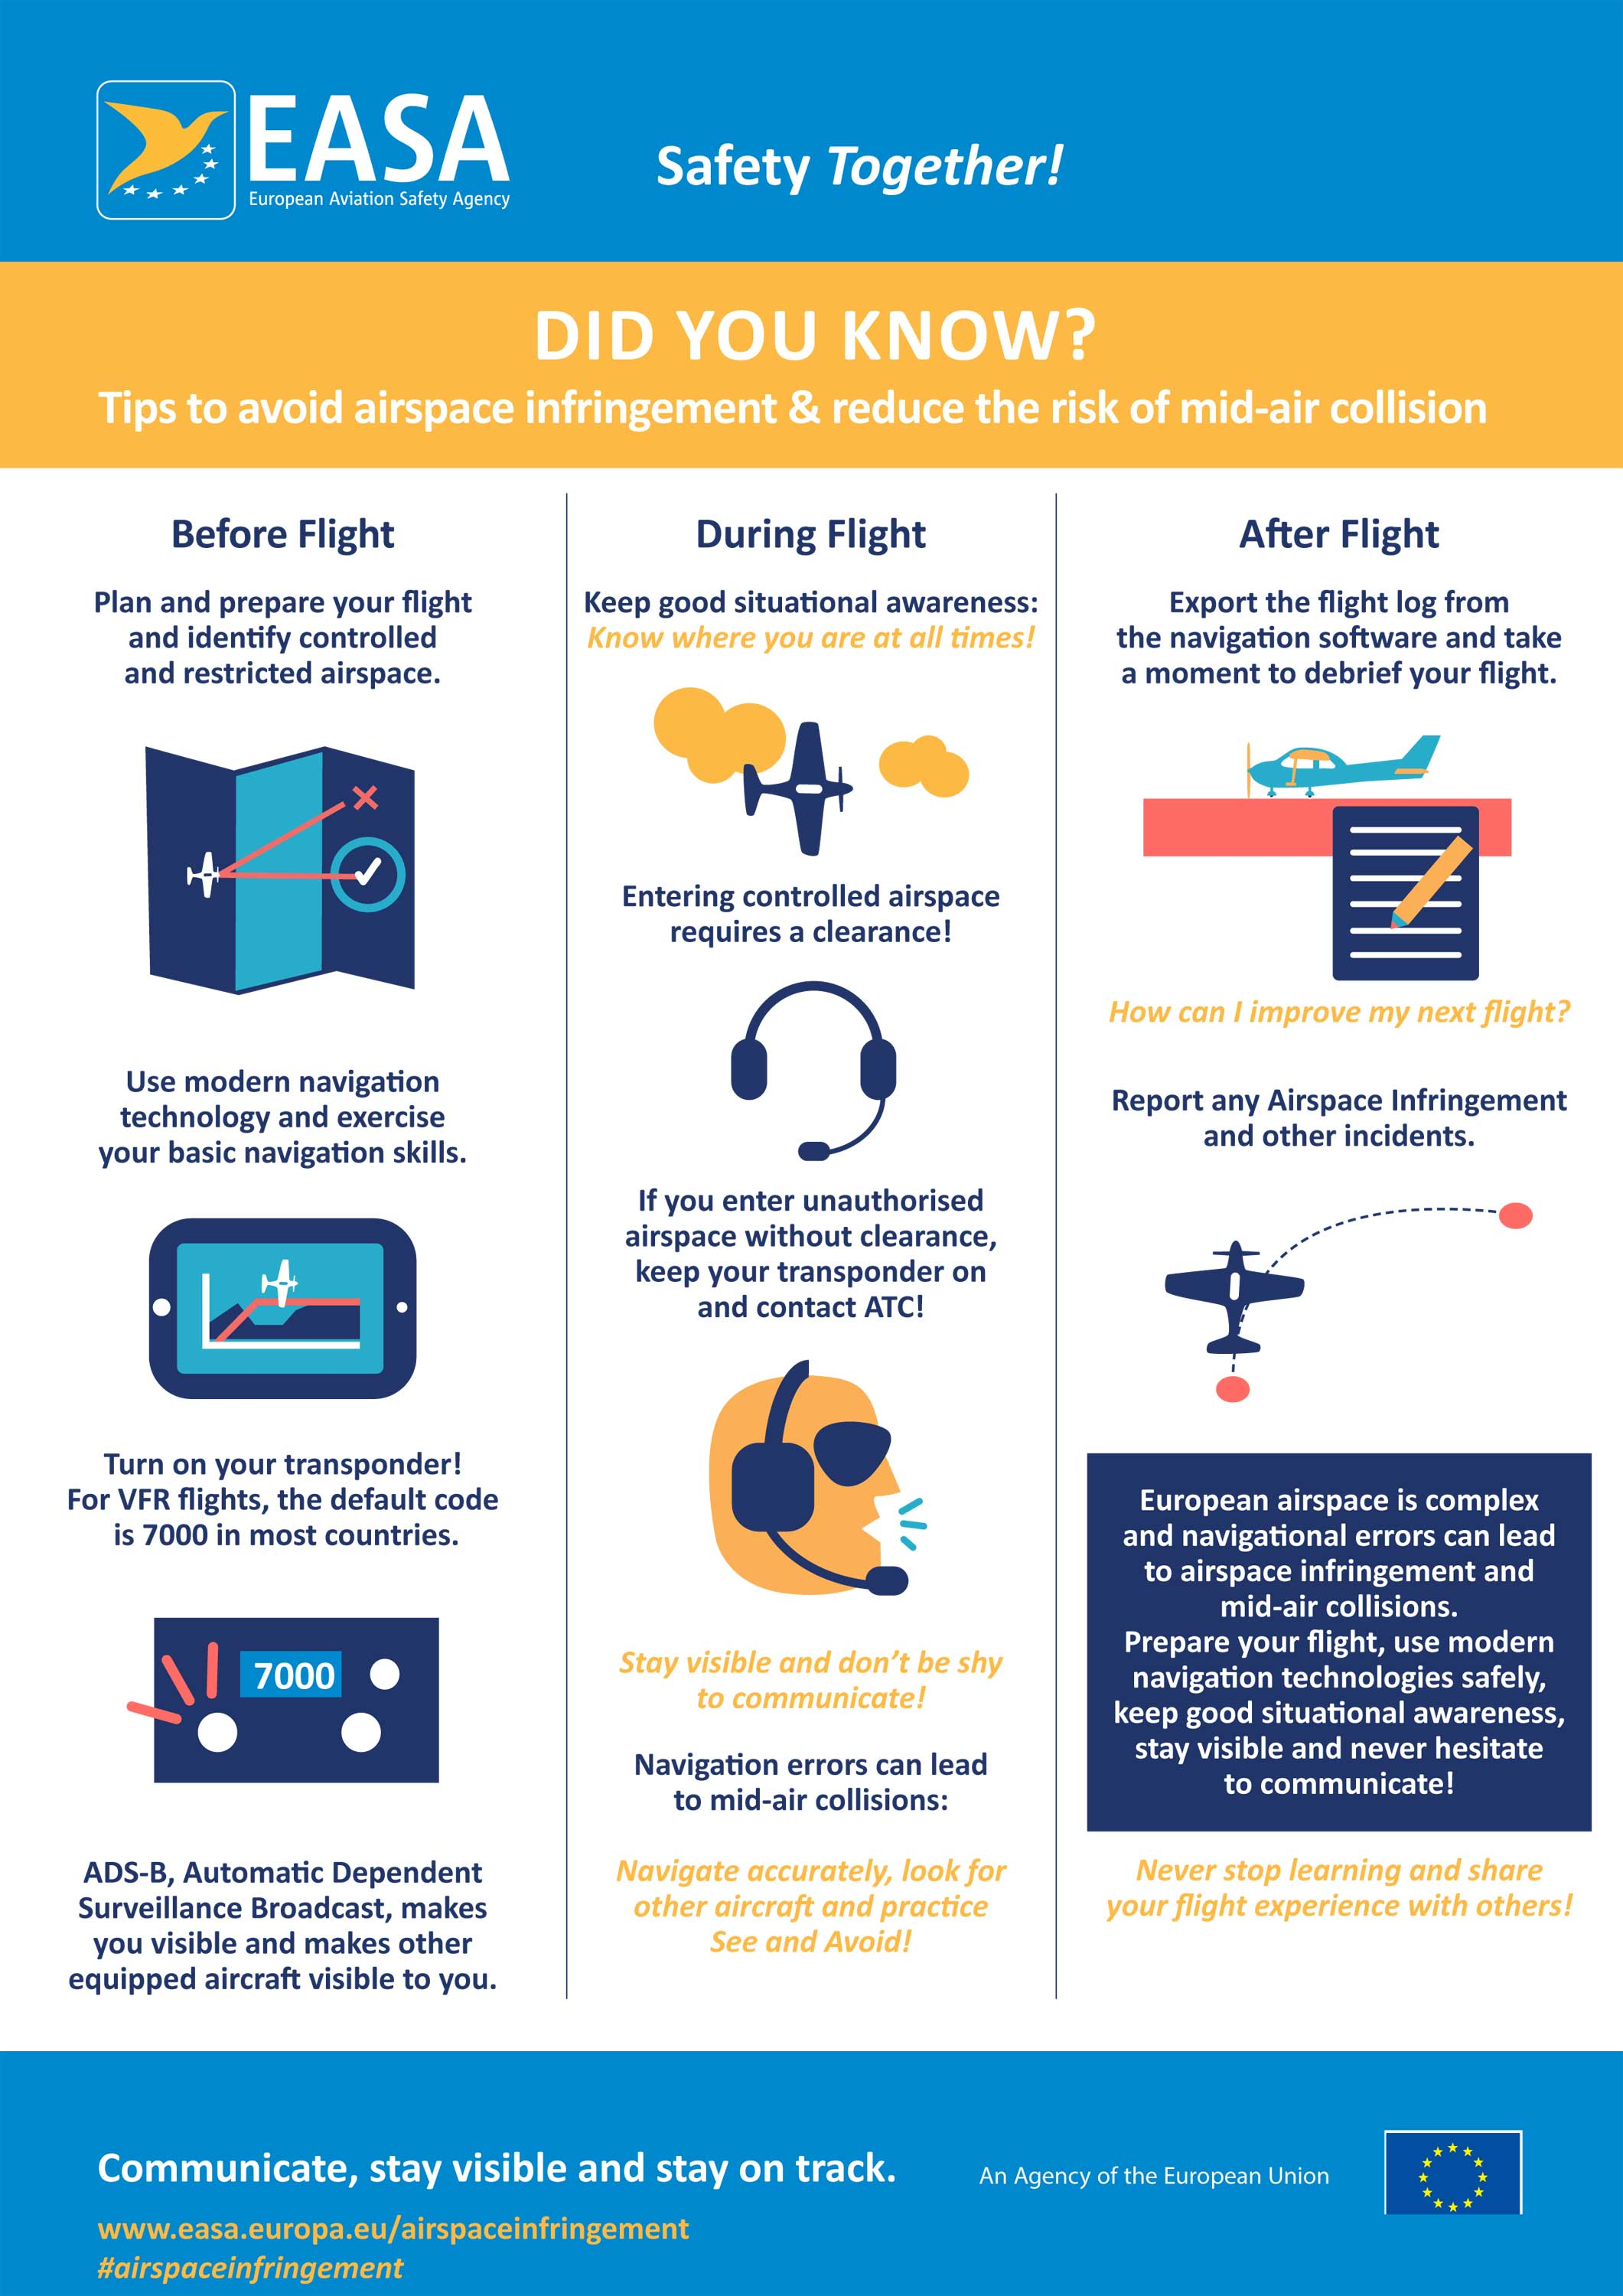 EASA avoiding sirspace infringements infographic